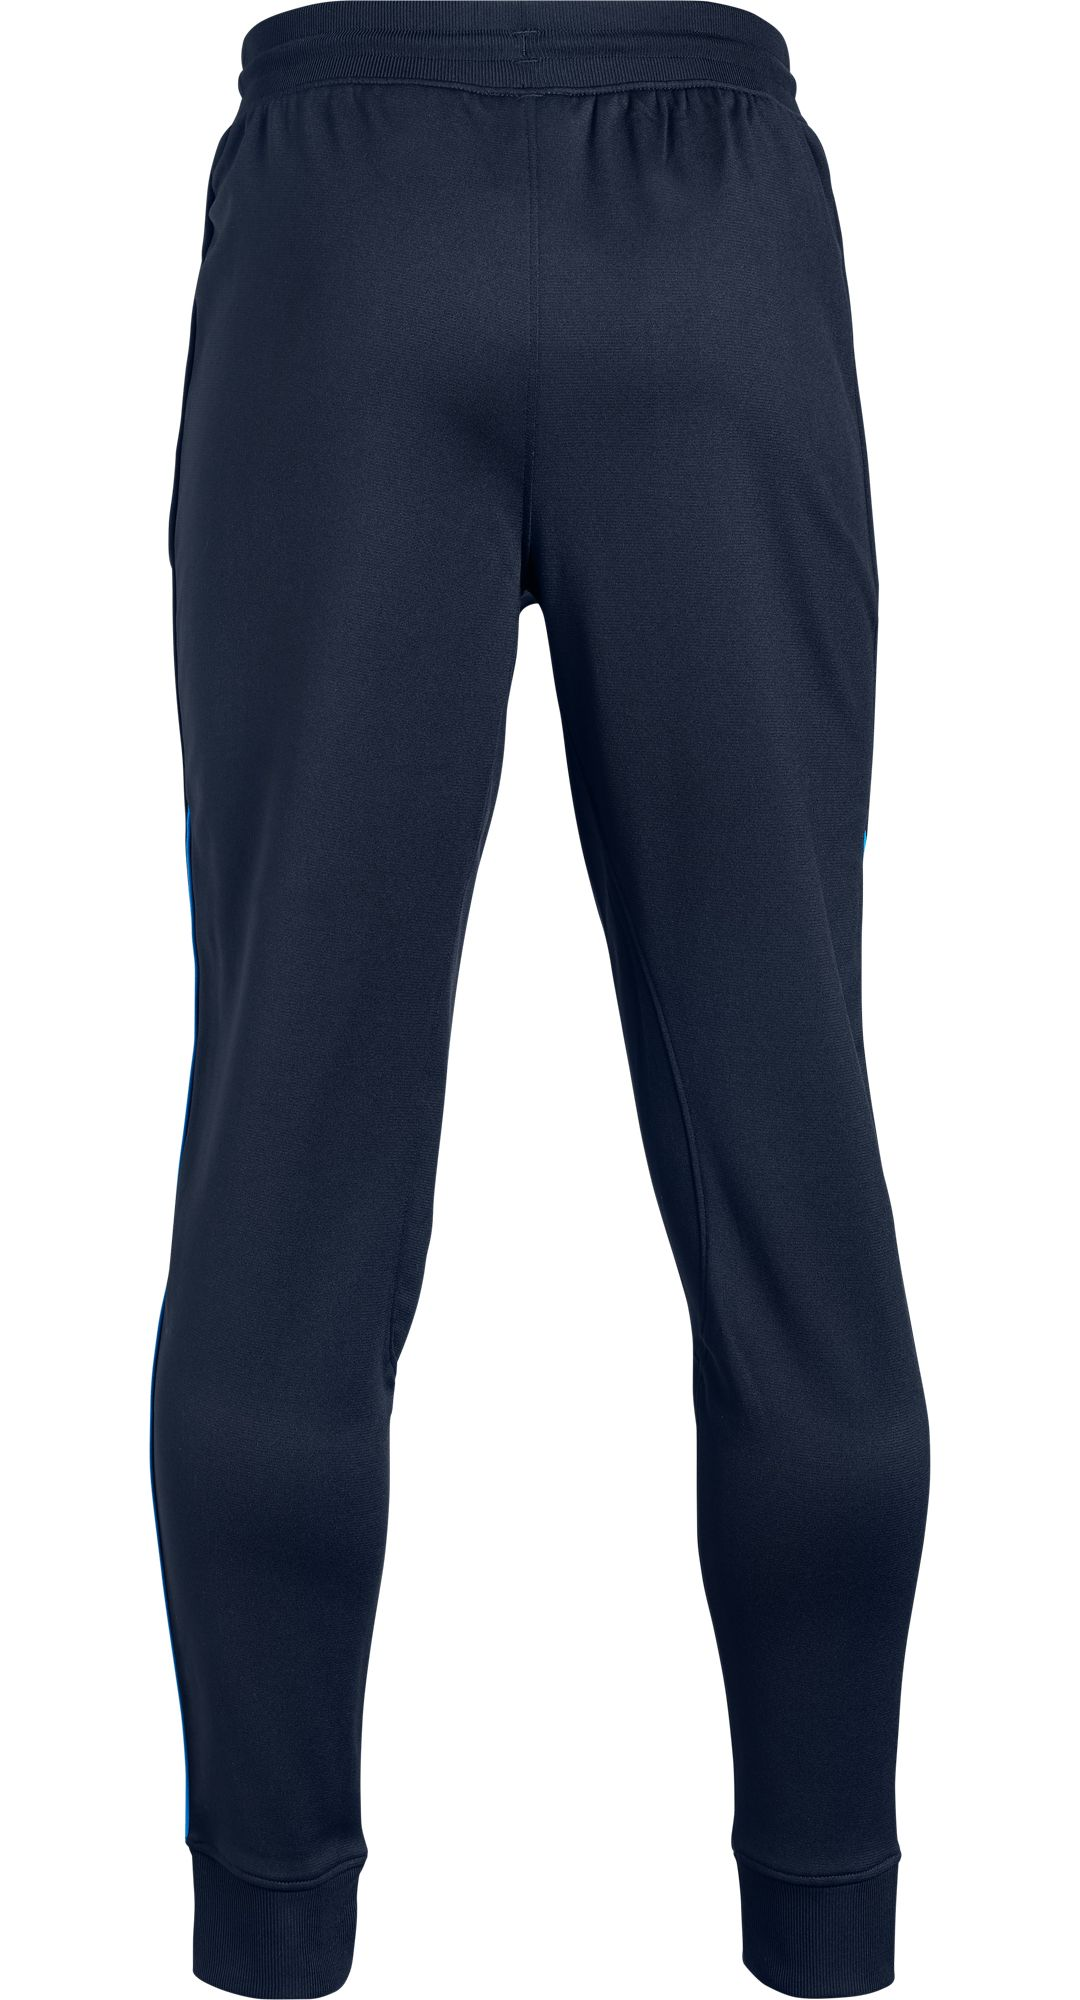 b46c0cf3f6f91 Under Armour Boys' Pennant Tapered Pants | DICK'S Sporting Goods